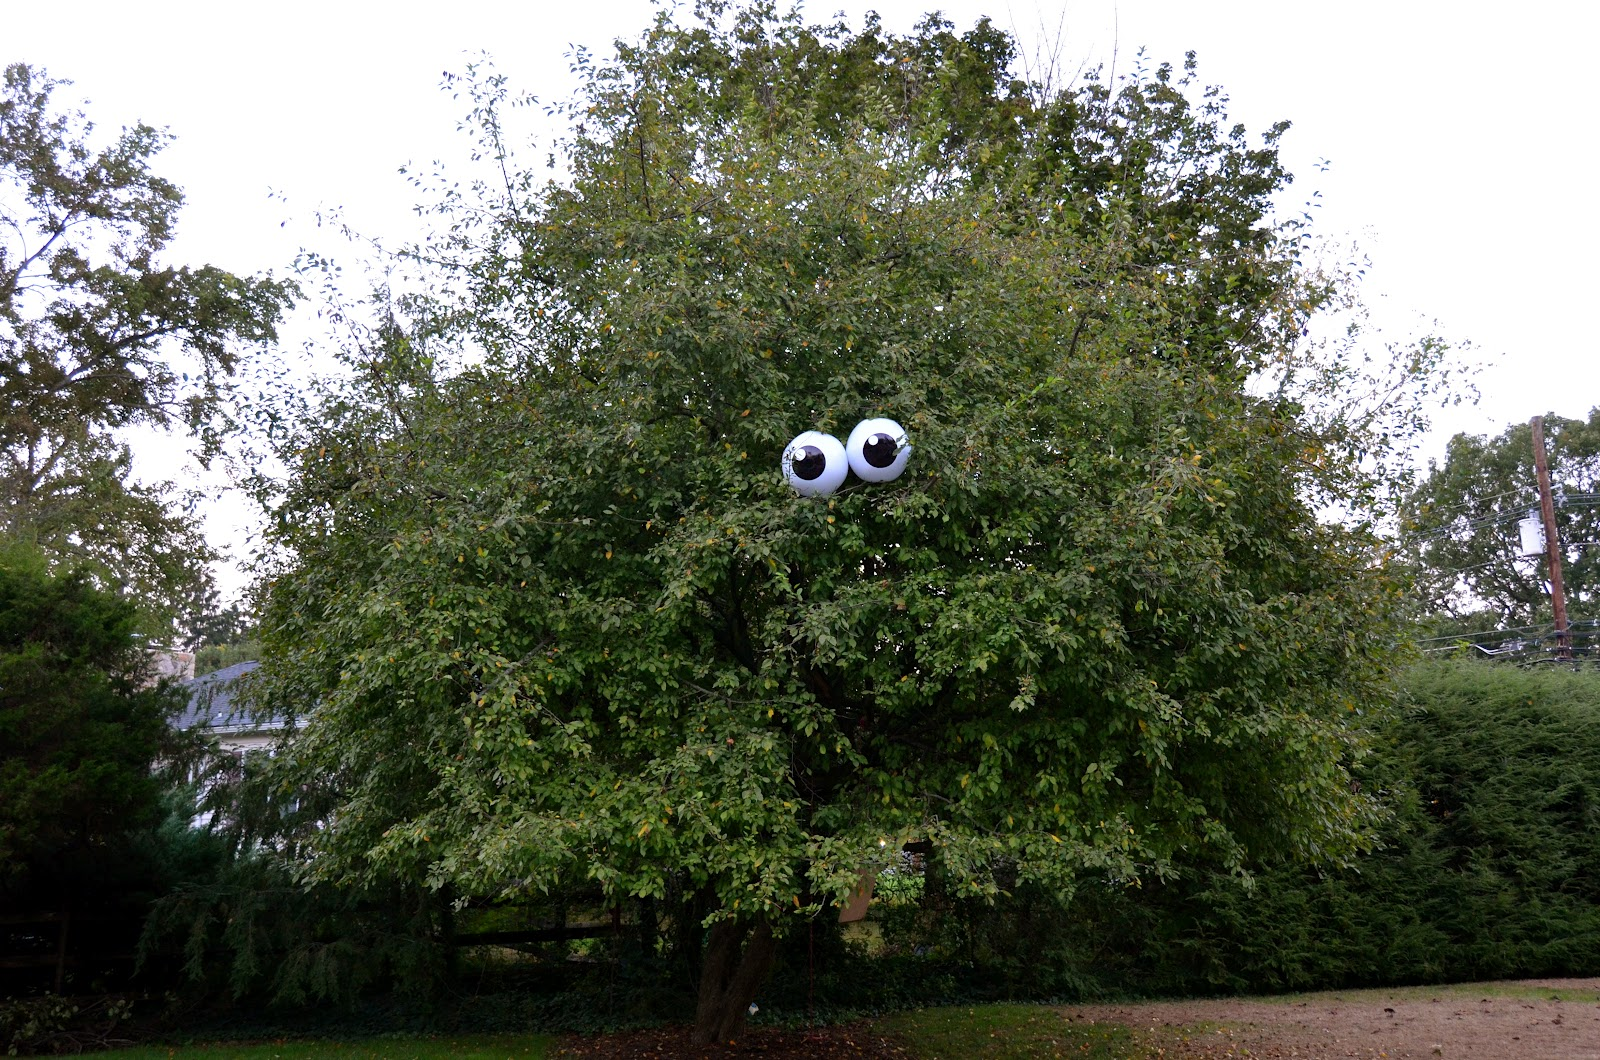 The Princess and The Frog BlogEyeballs in a Tree!